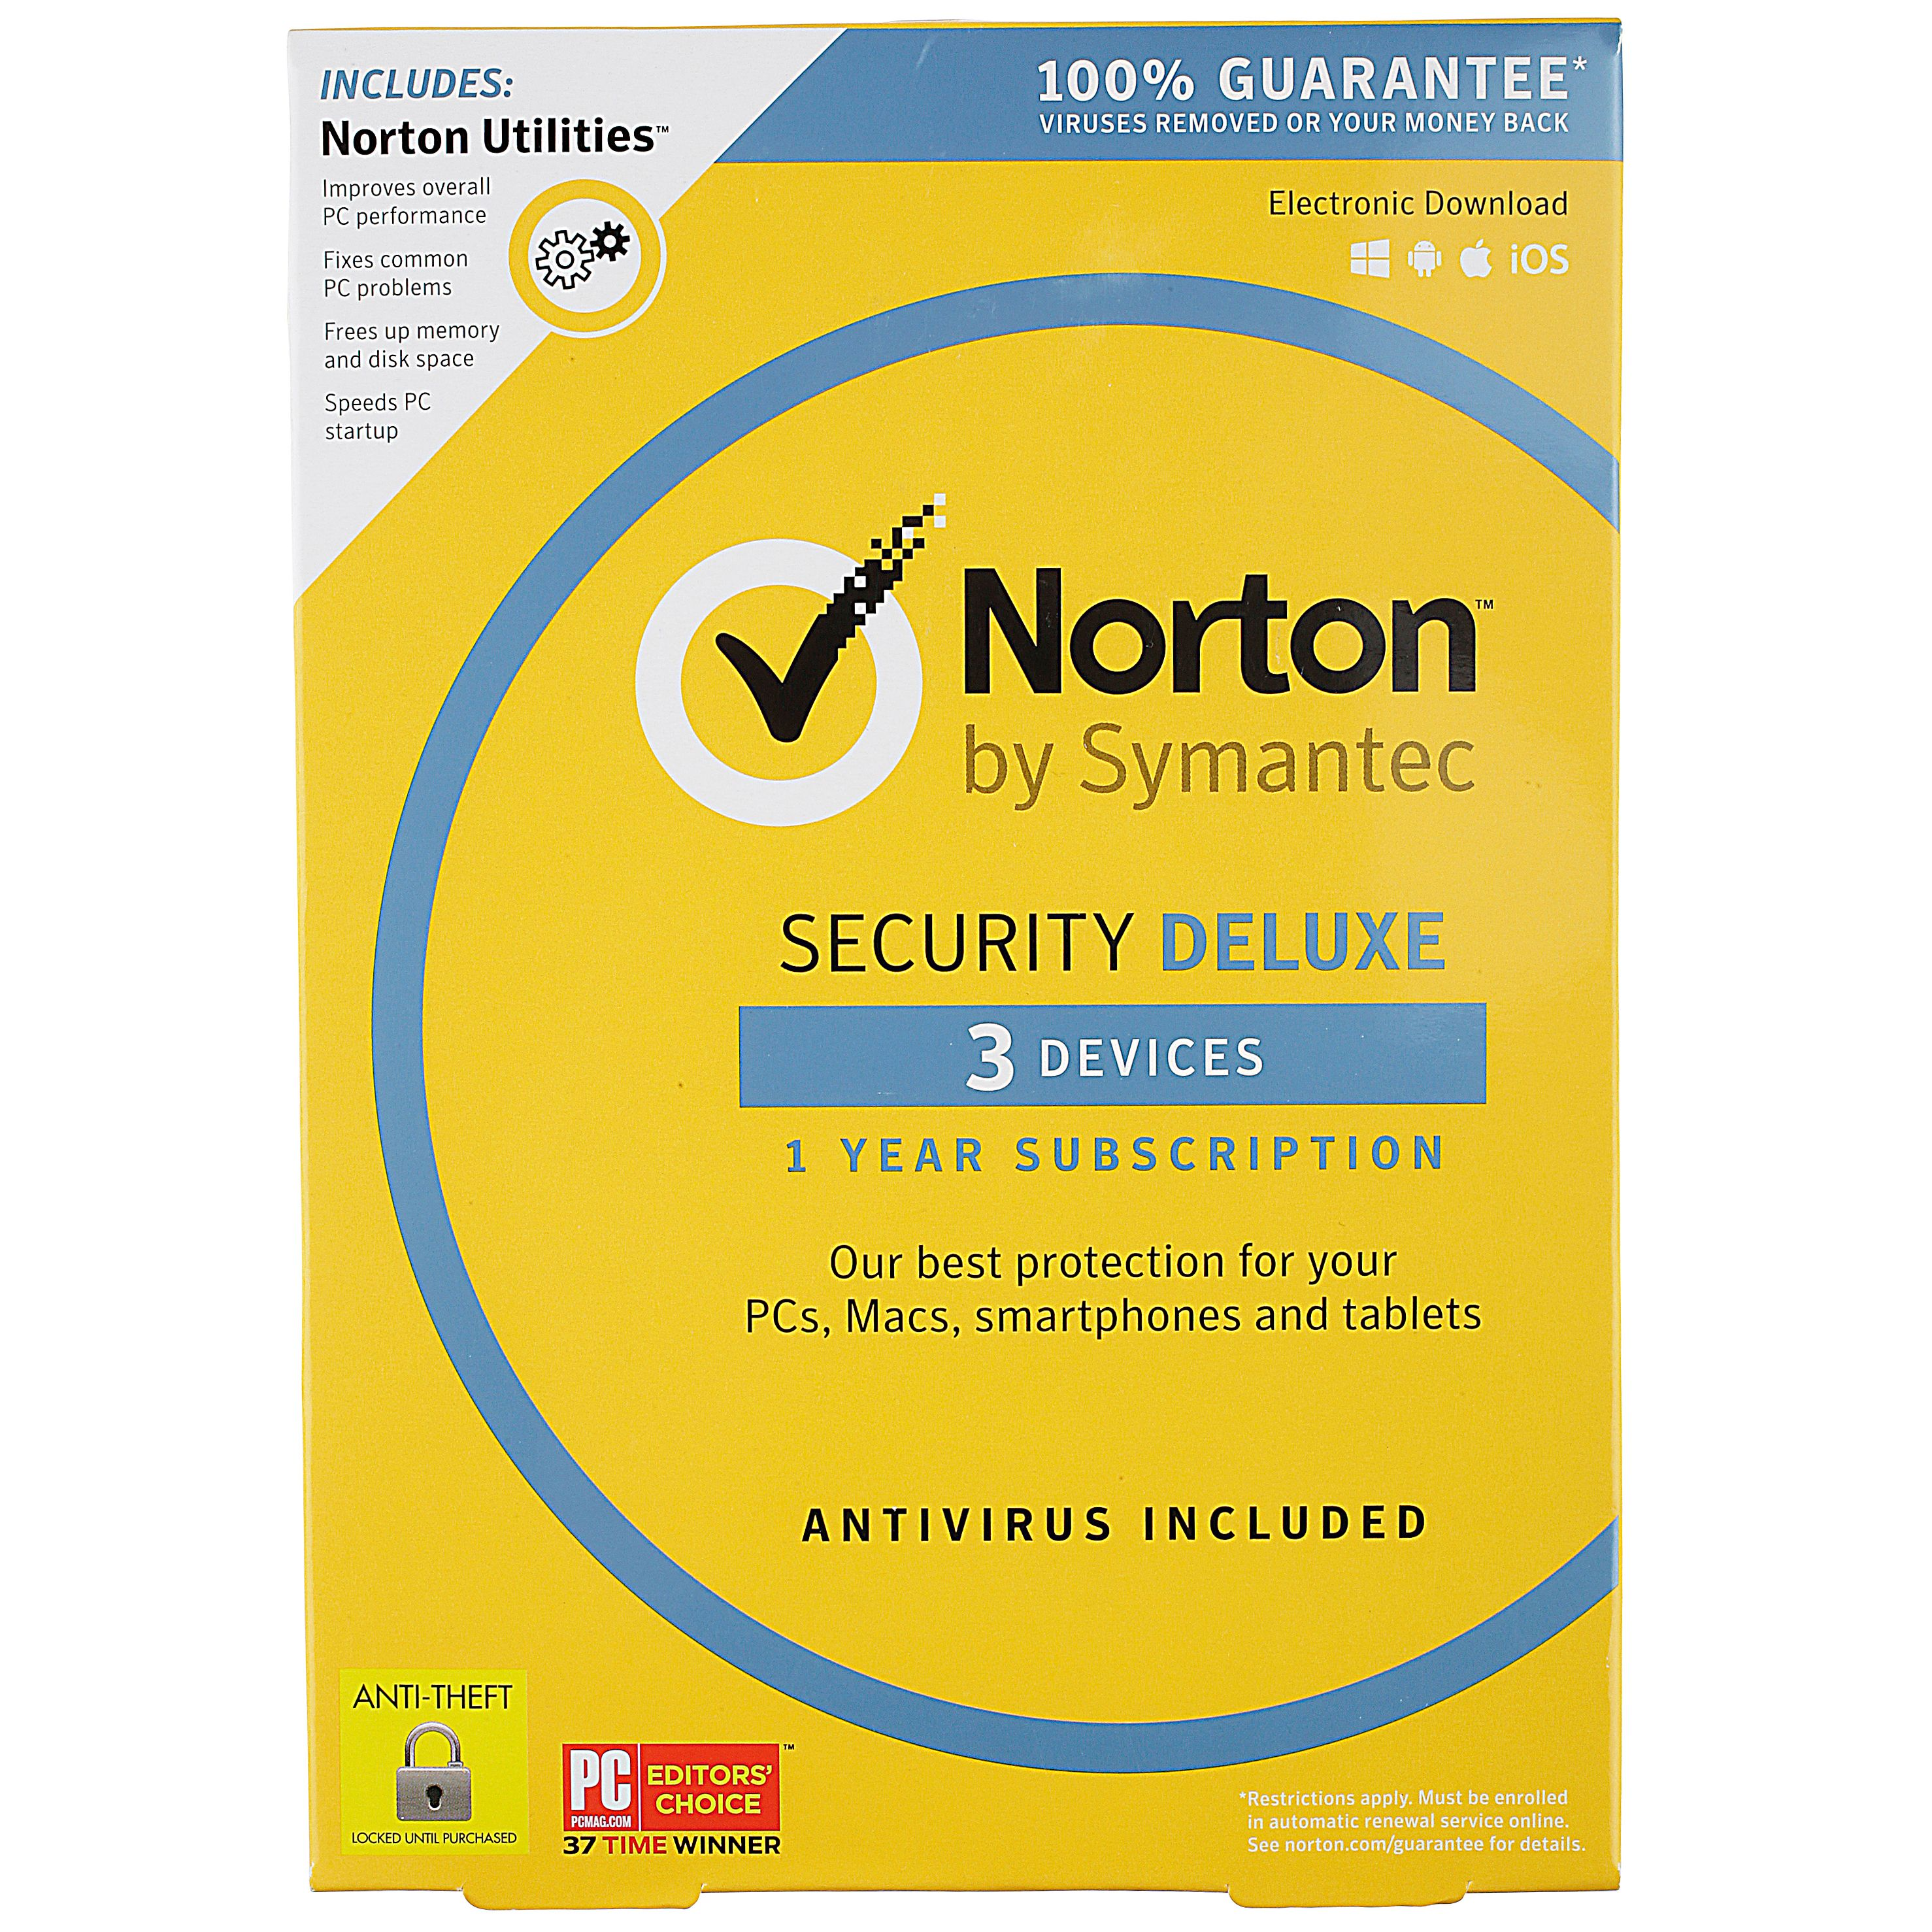 Norton by Symantec Security Deluxe 1 Year Subscription 3 Devices